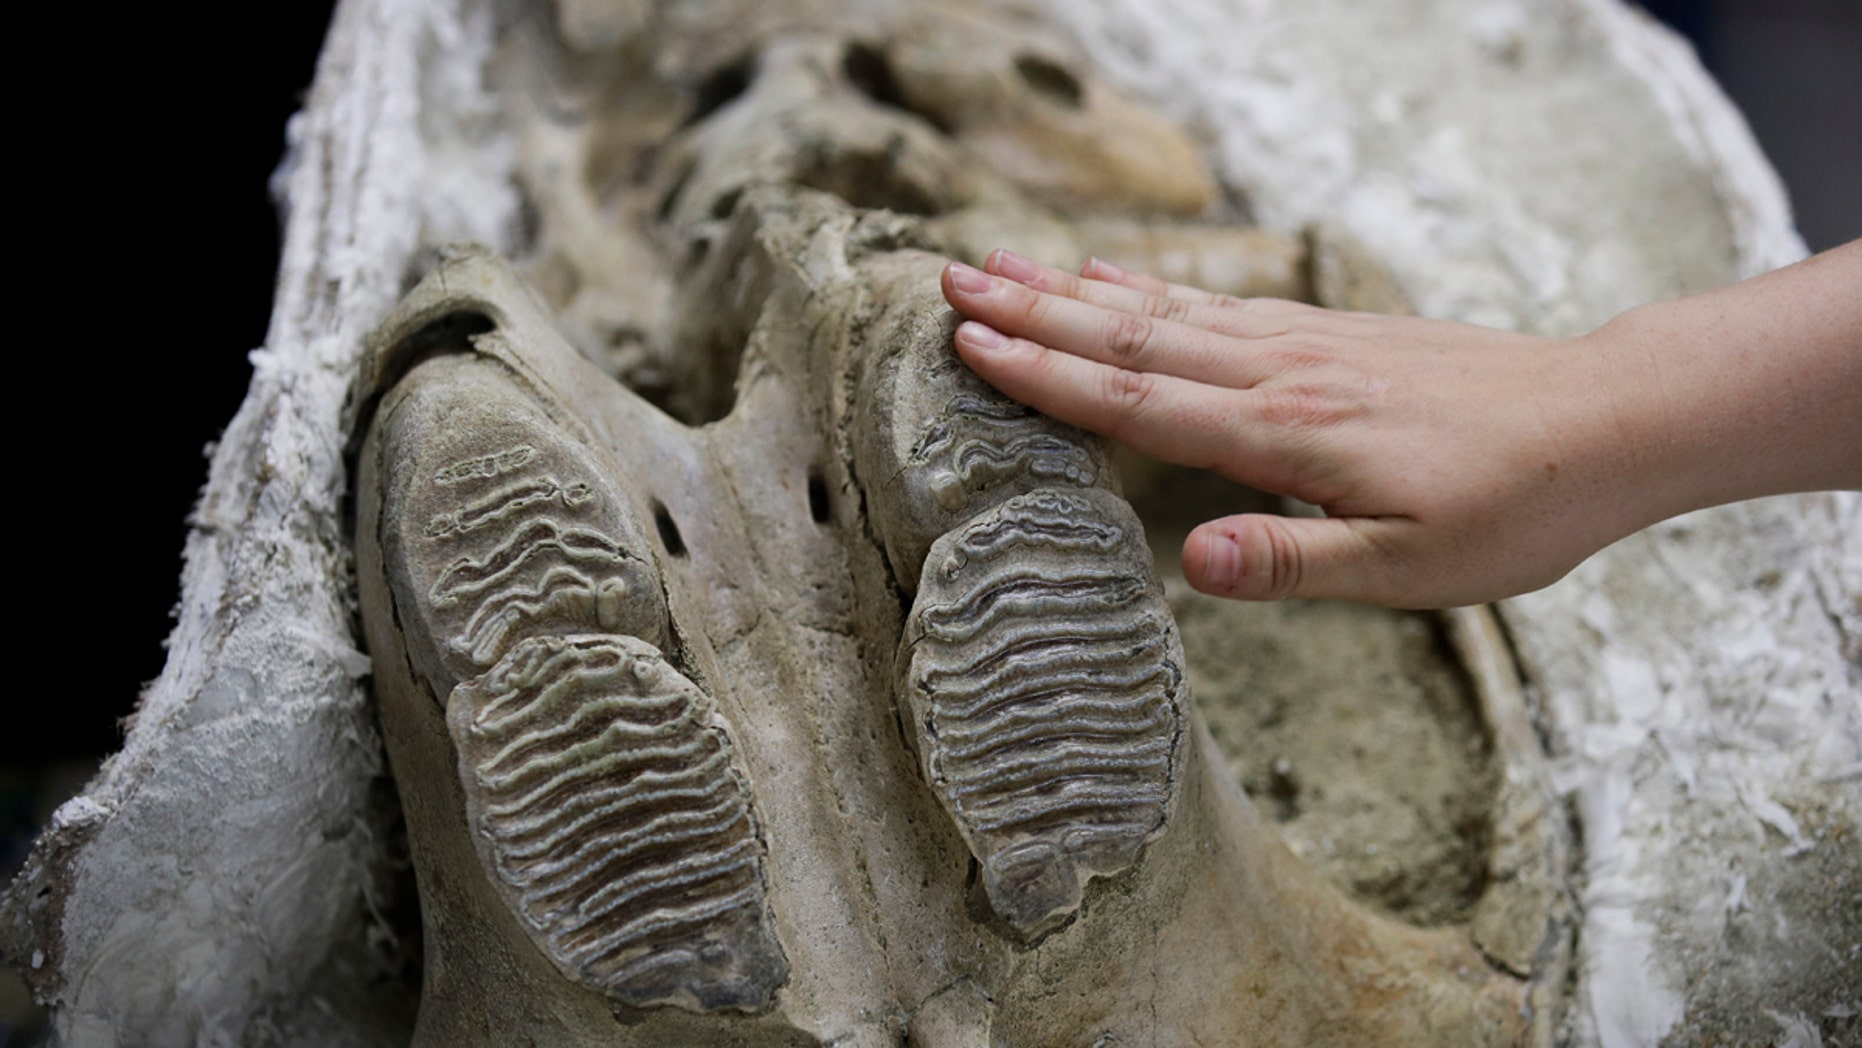 Paleontologist Ashley Leger shows the skull of a young Columbian mammoth found at the construction site of the Metro Purple Line extension in Los Angeles.